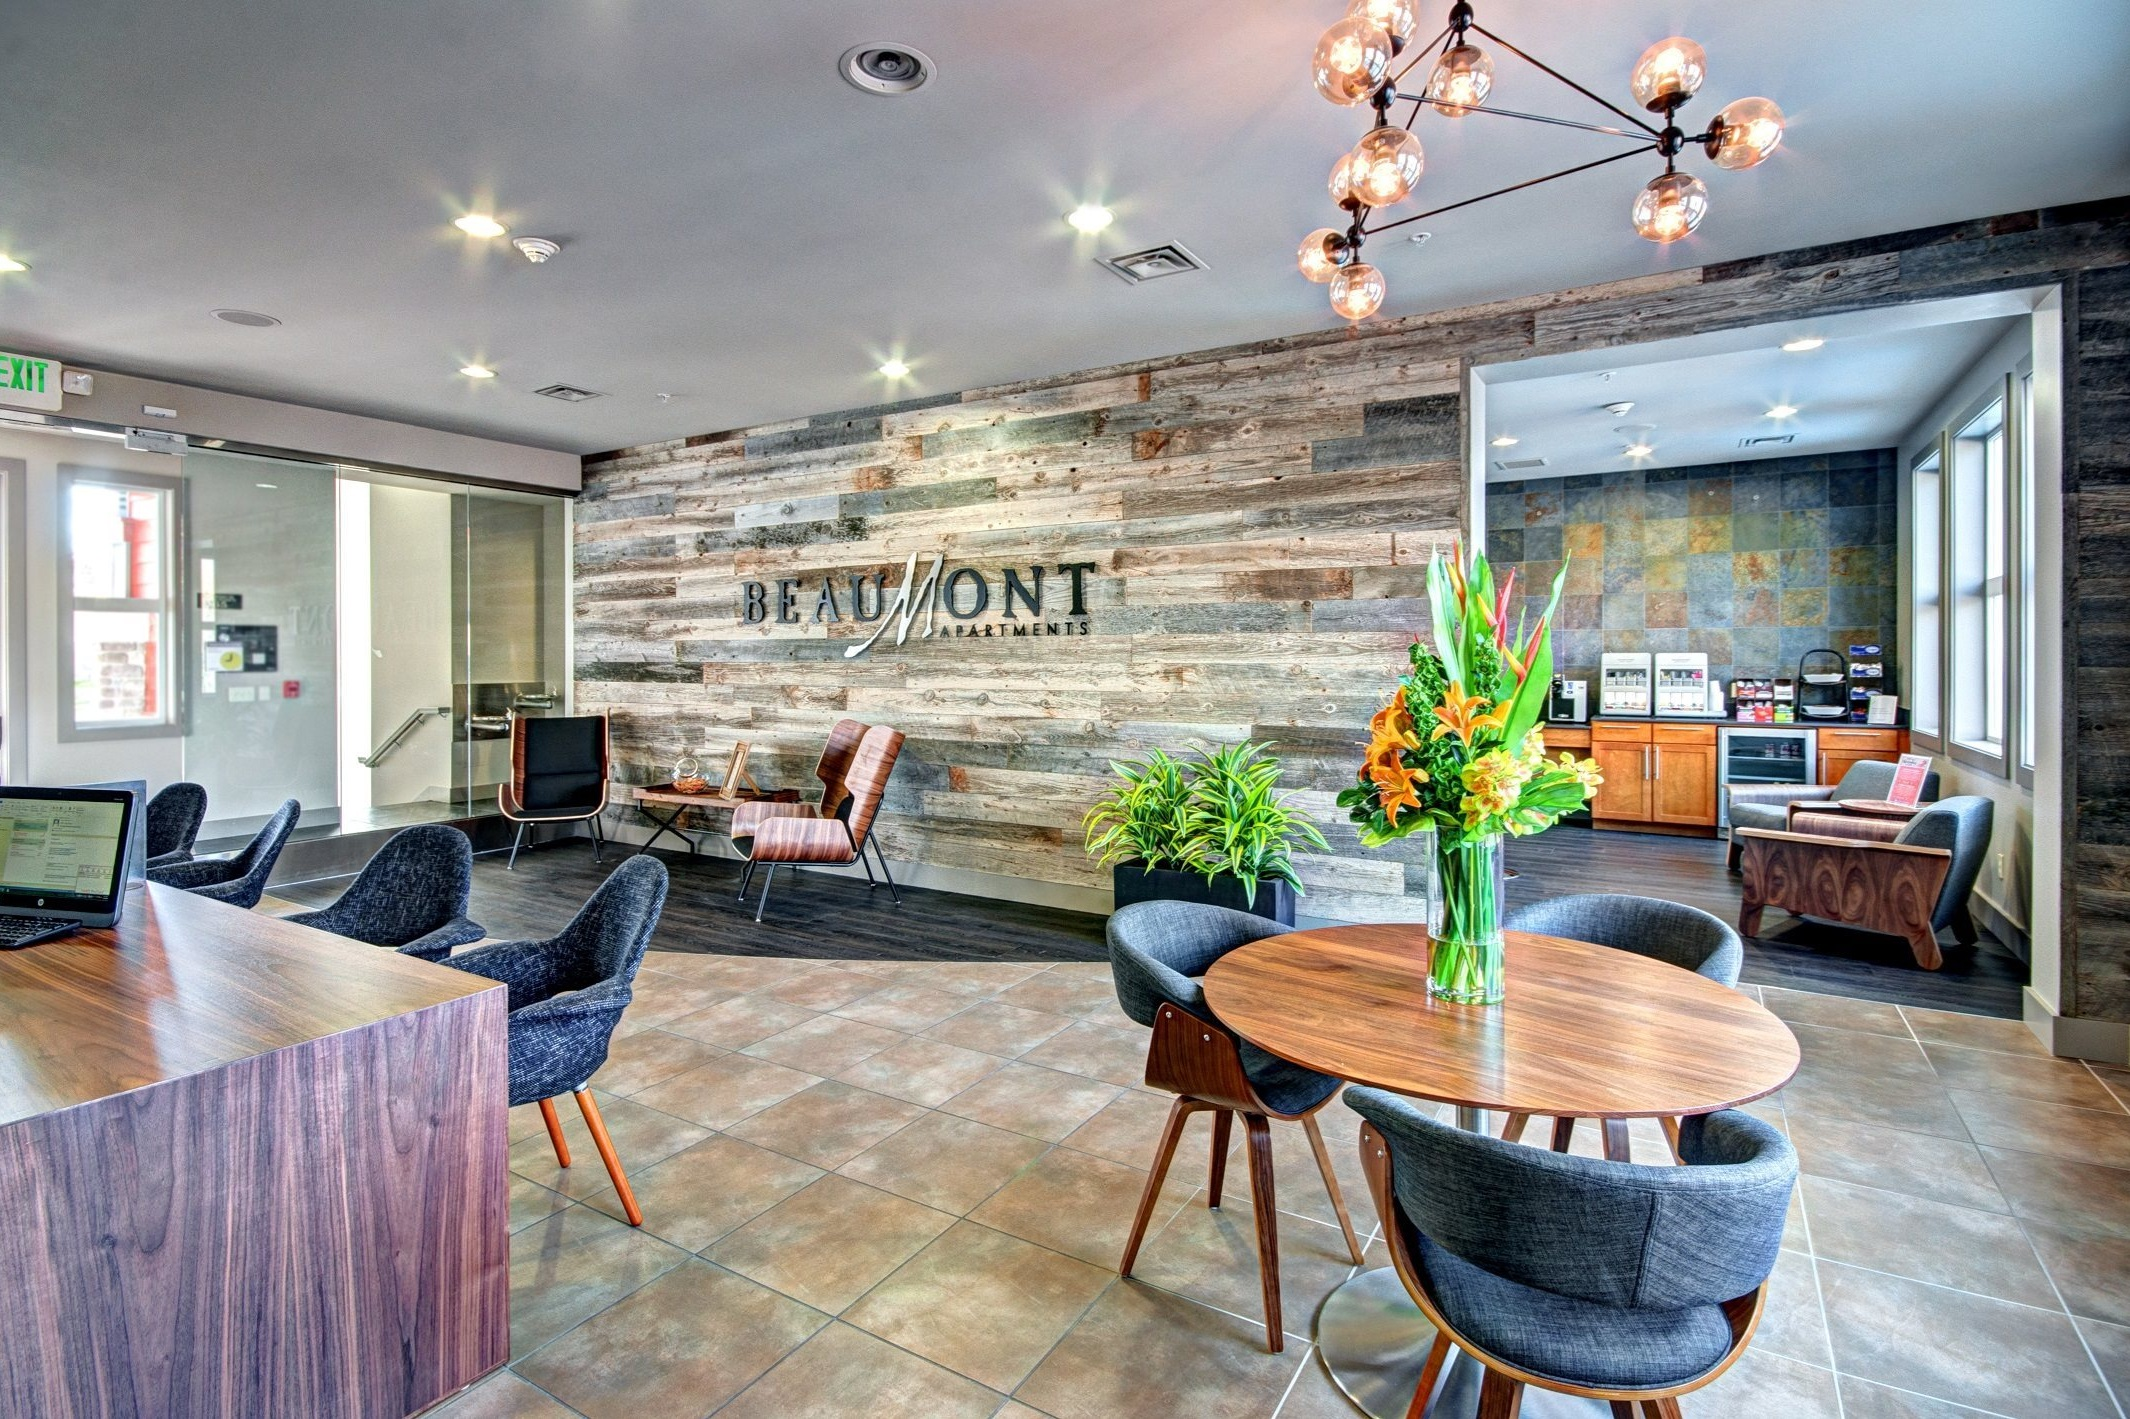 The Beaumont -